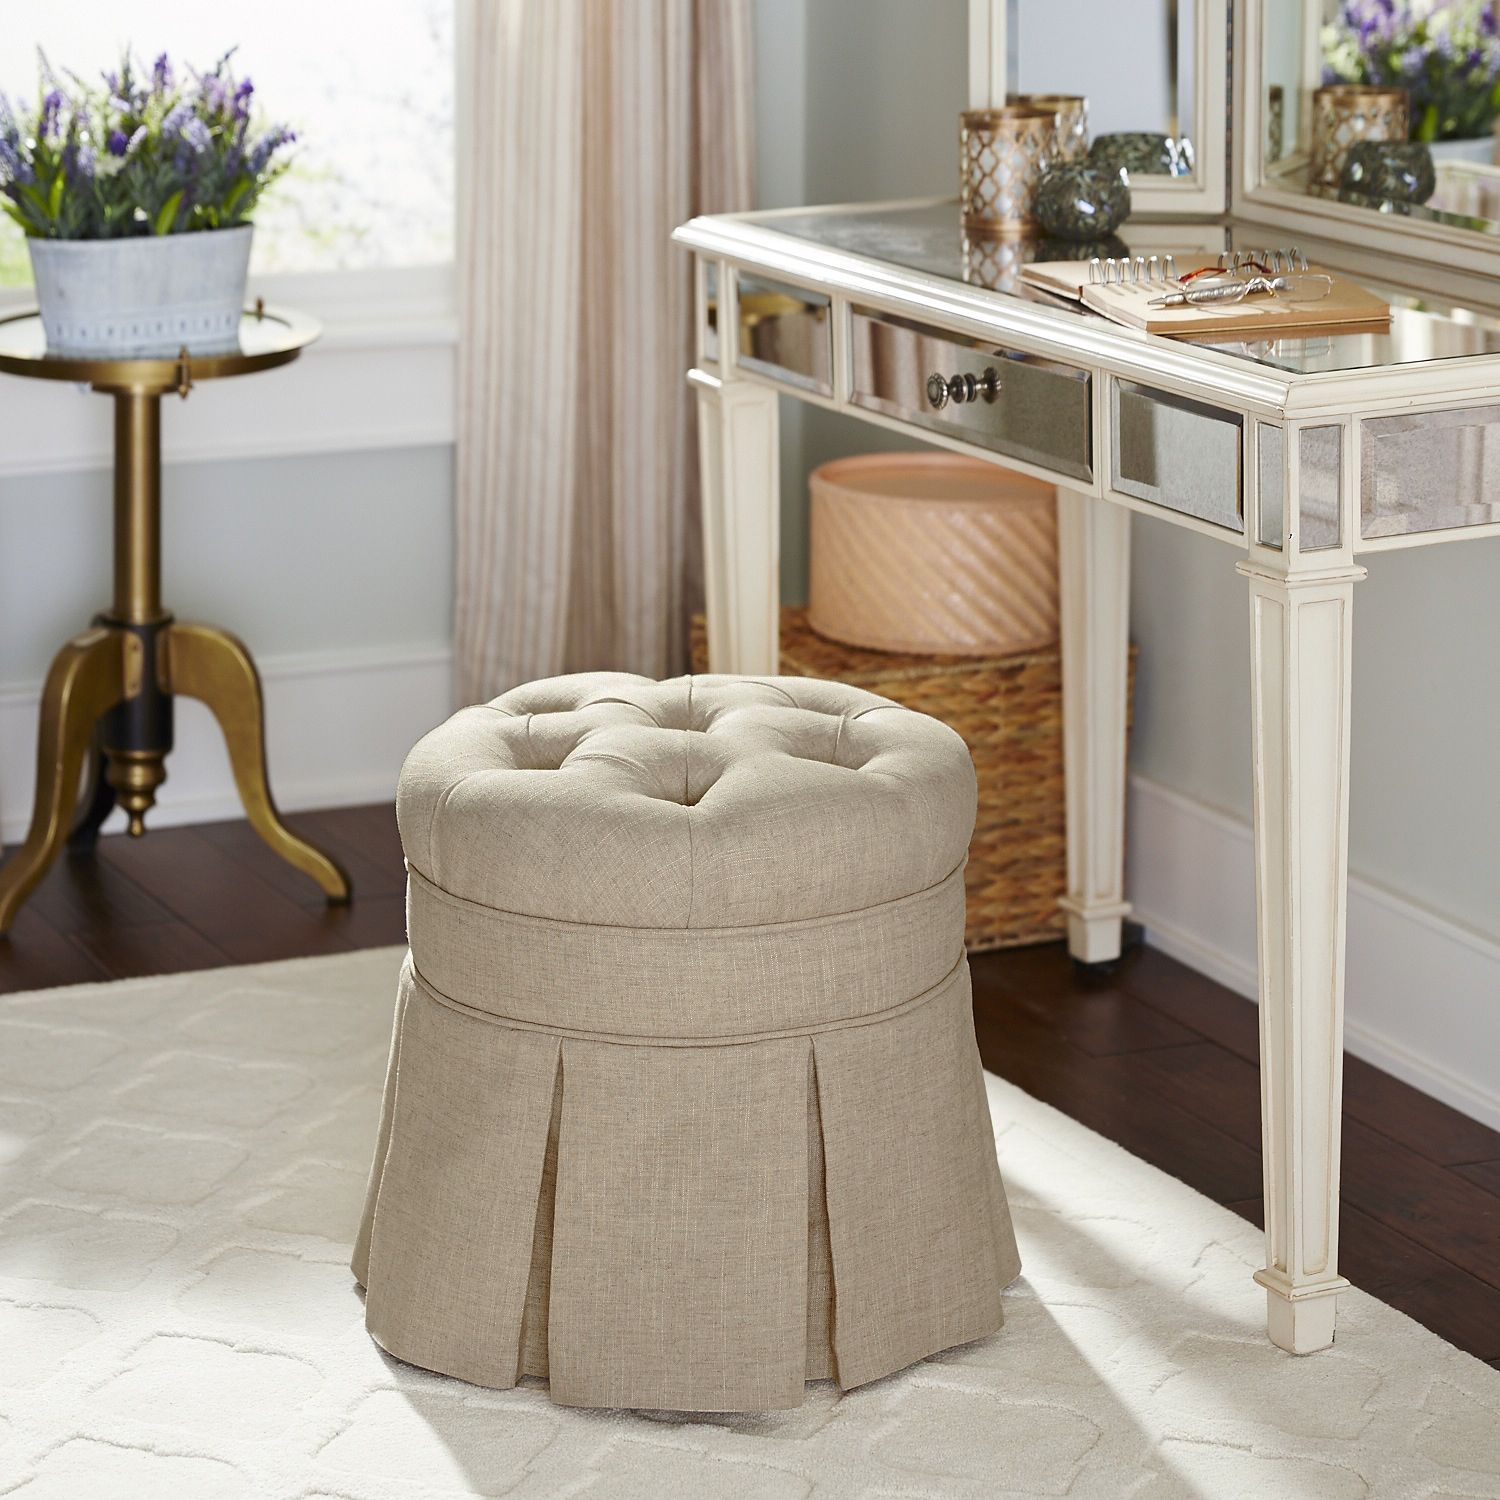 splendid backs stool seat most chair swivel bathroom bath chairs vanity and small for benches with